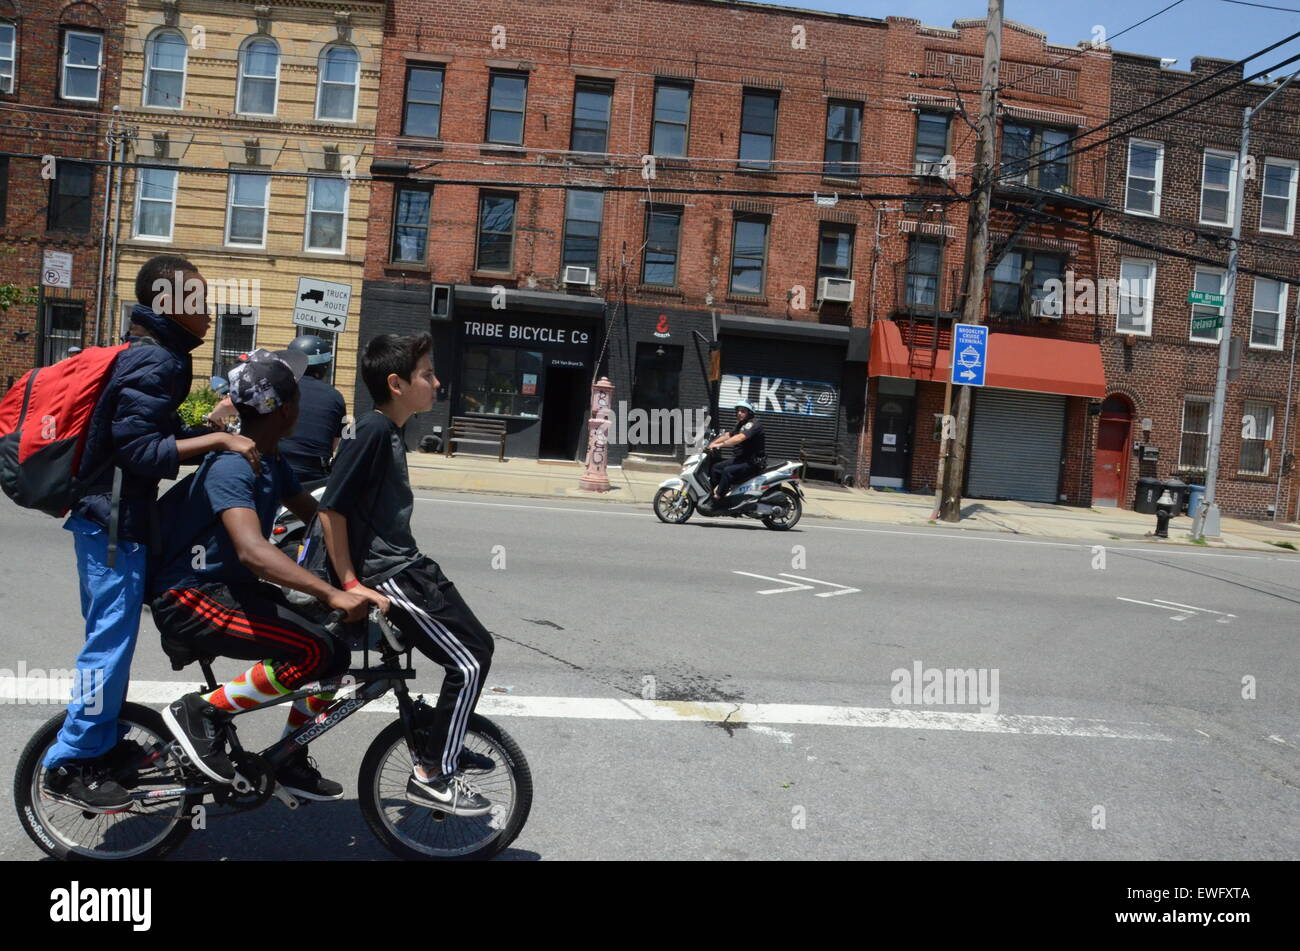 youths on bike cop on scooter brooklyn usa - Stock Image